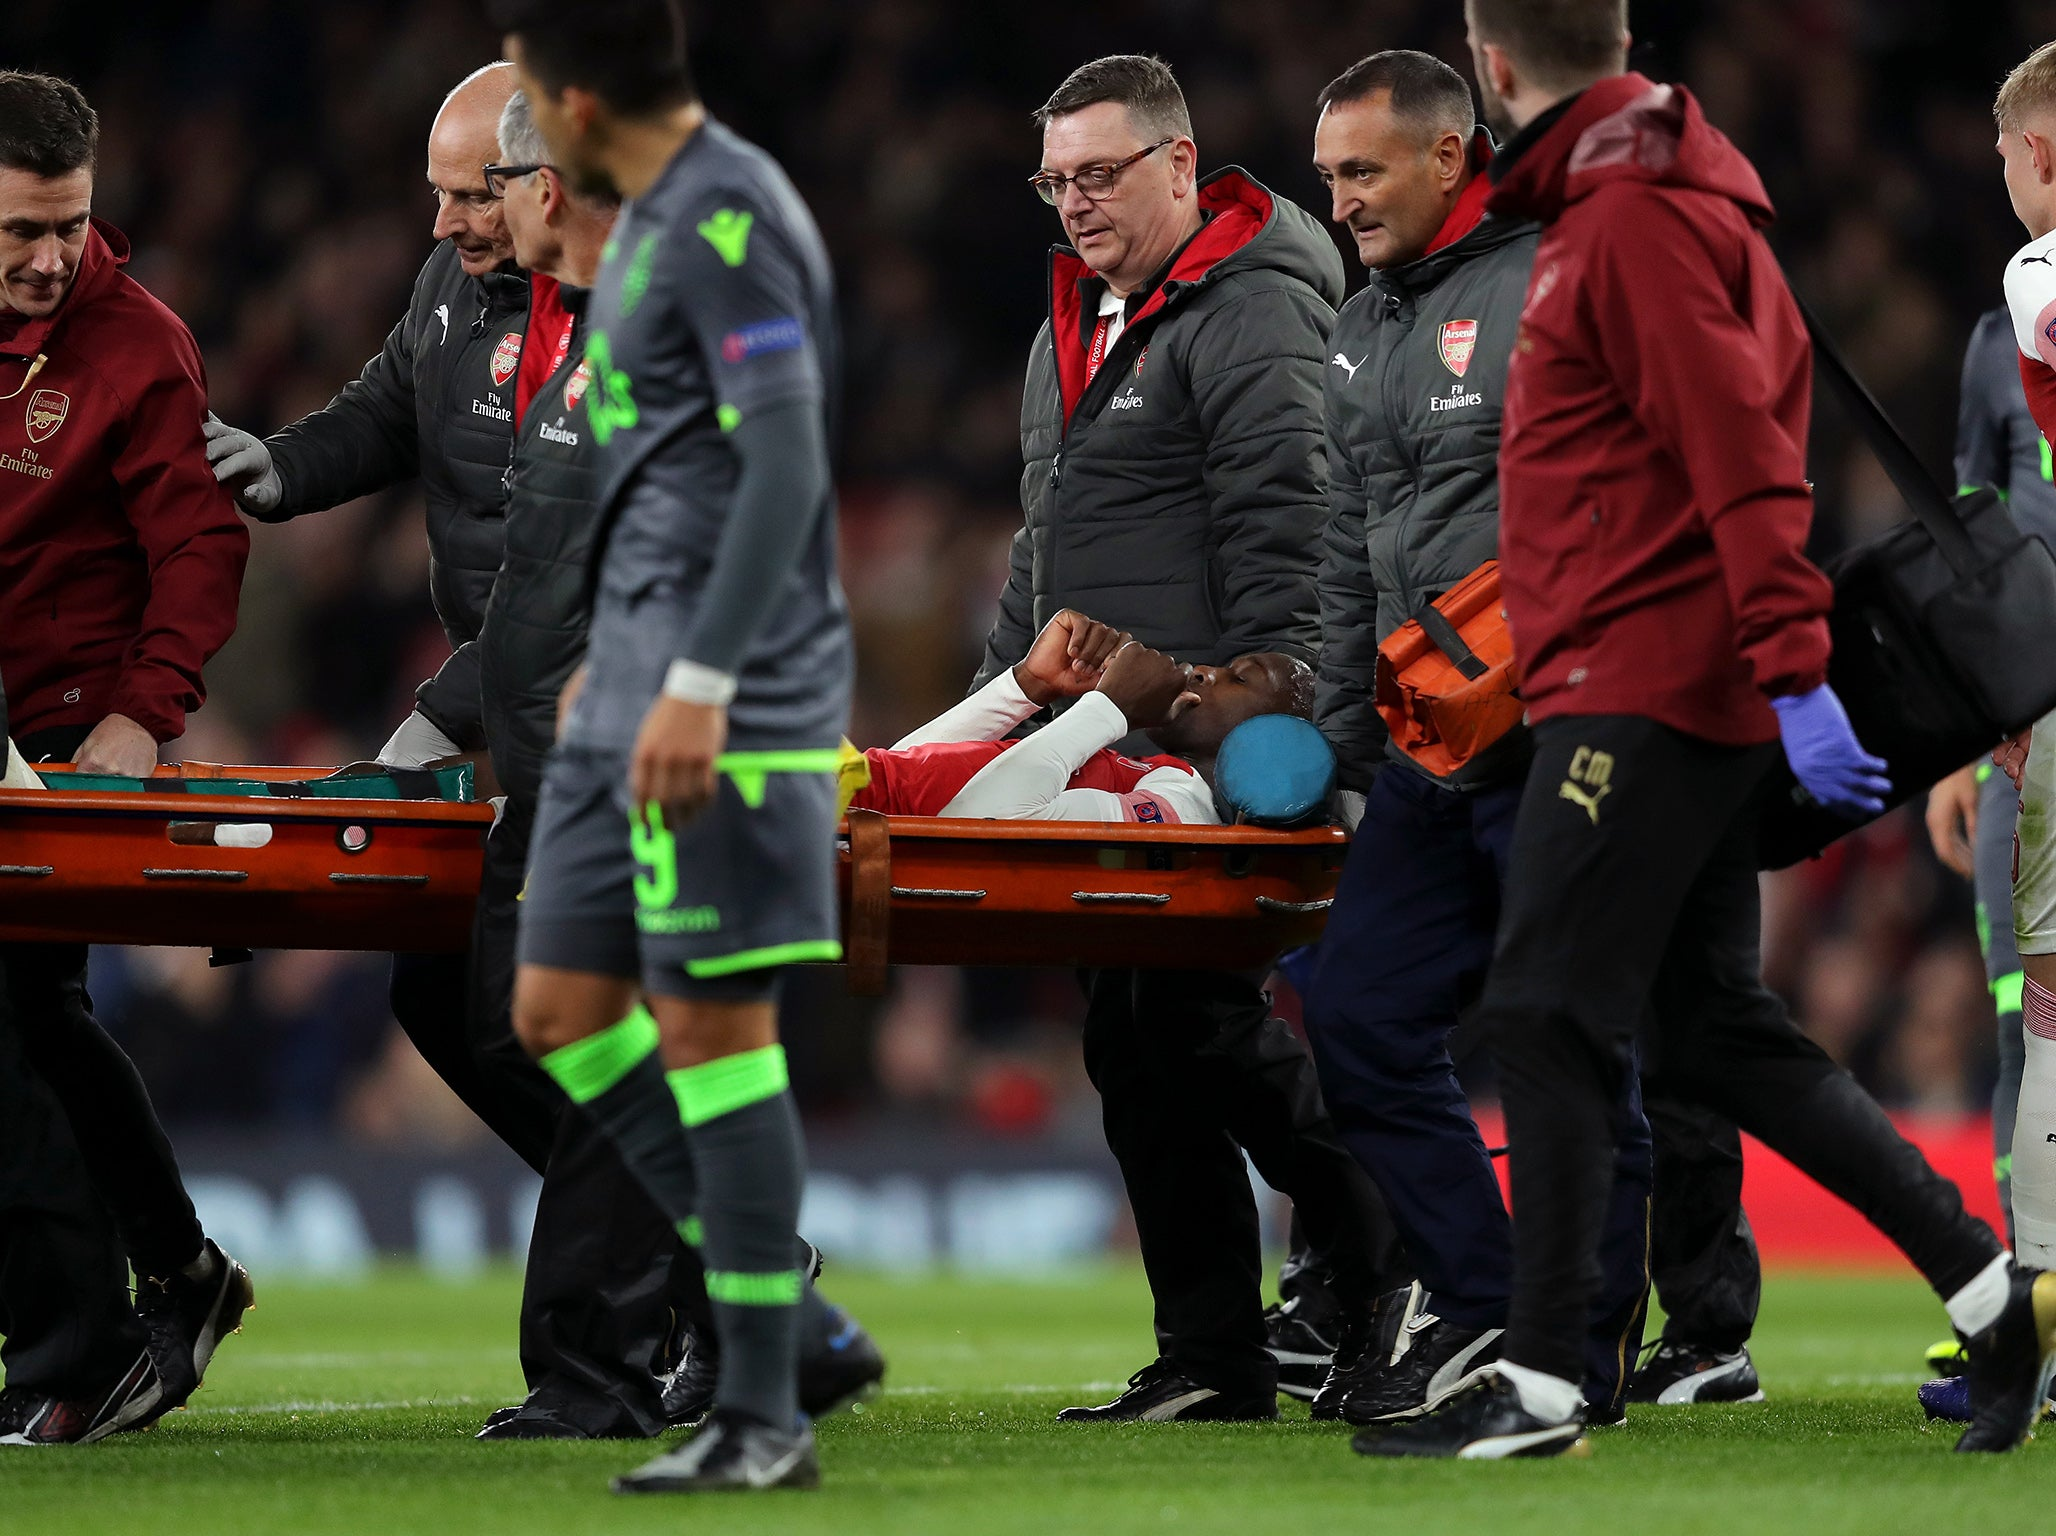 Arsenal vs Sporting result: Danny Welbeck injury sours progression to Europa League knockout stages